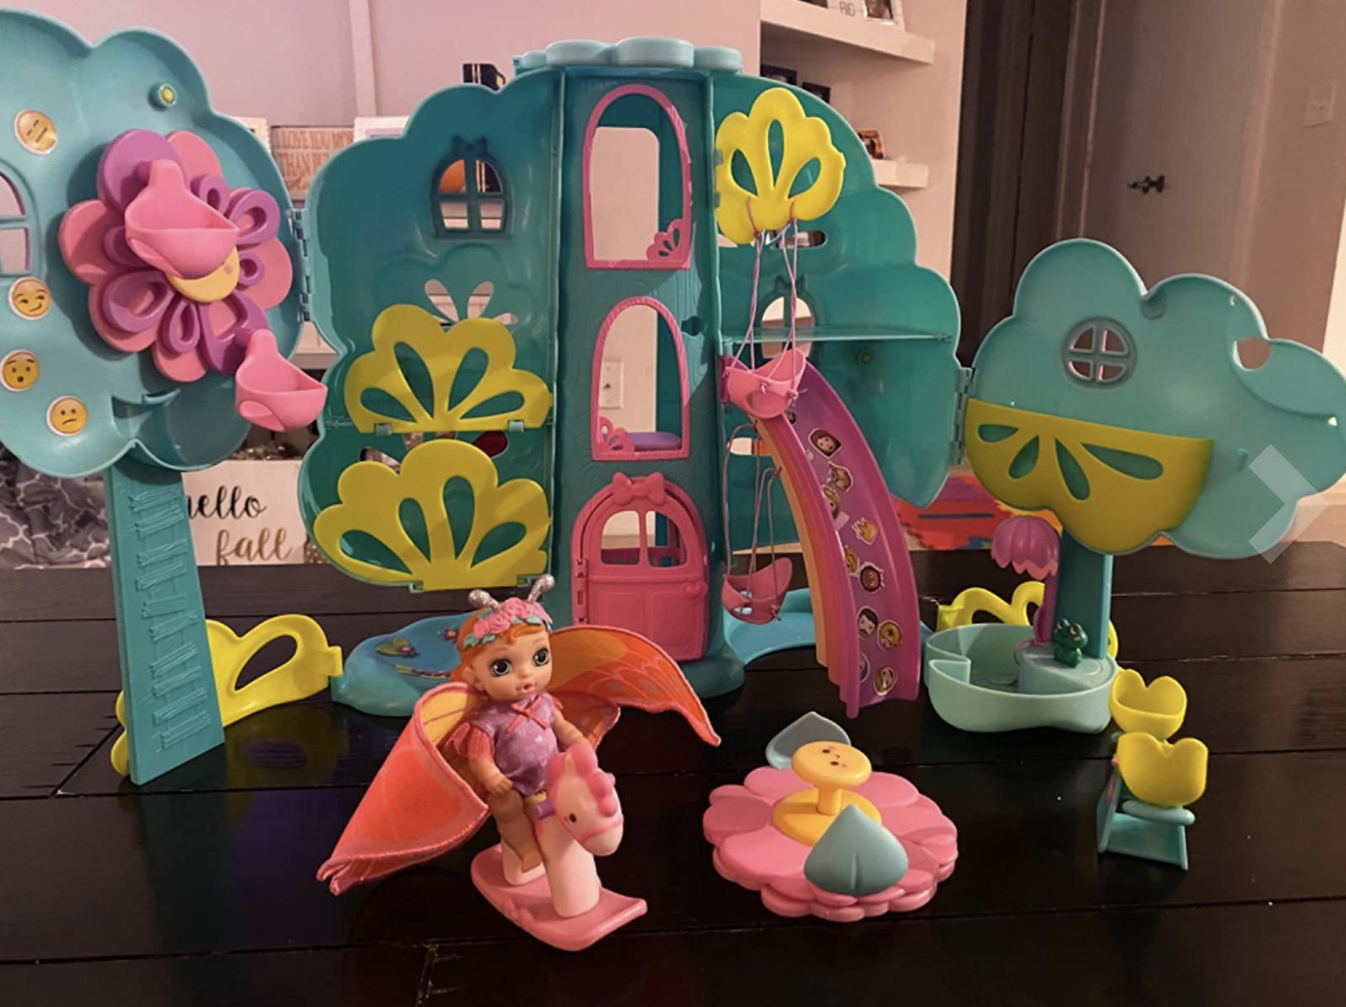 The treehouse playset